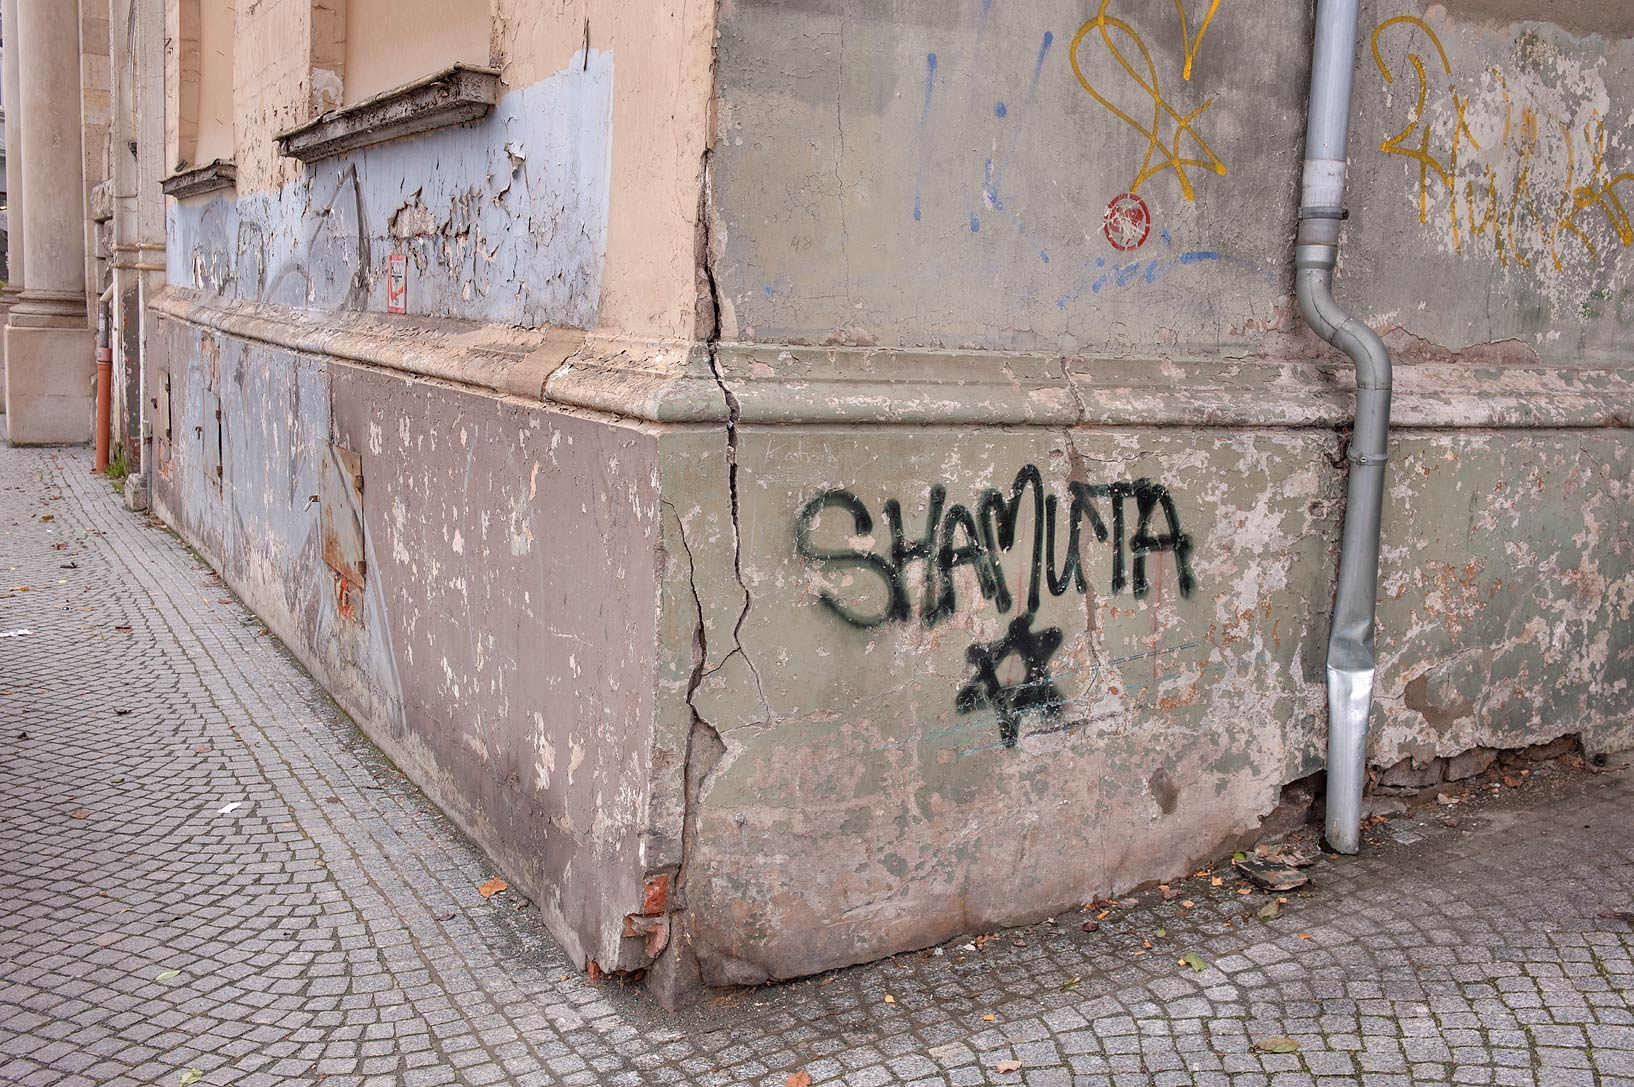 Graffiti on old houses. Eisenach, Germany